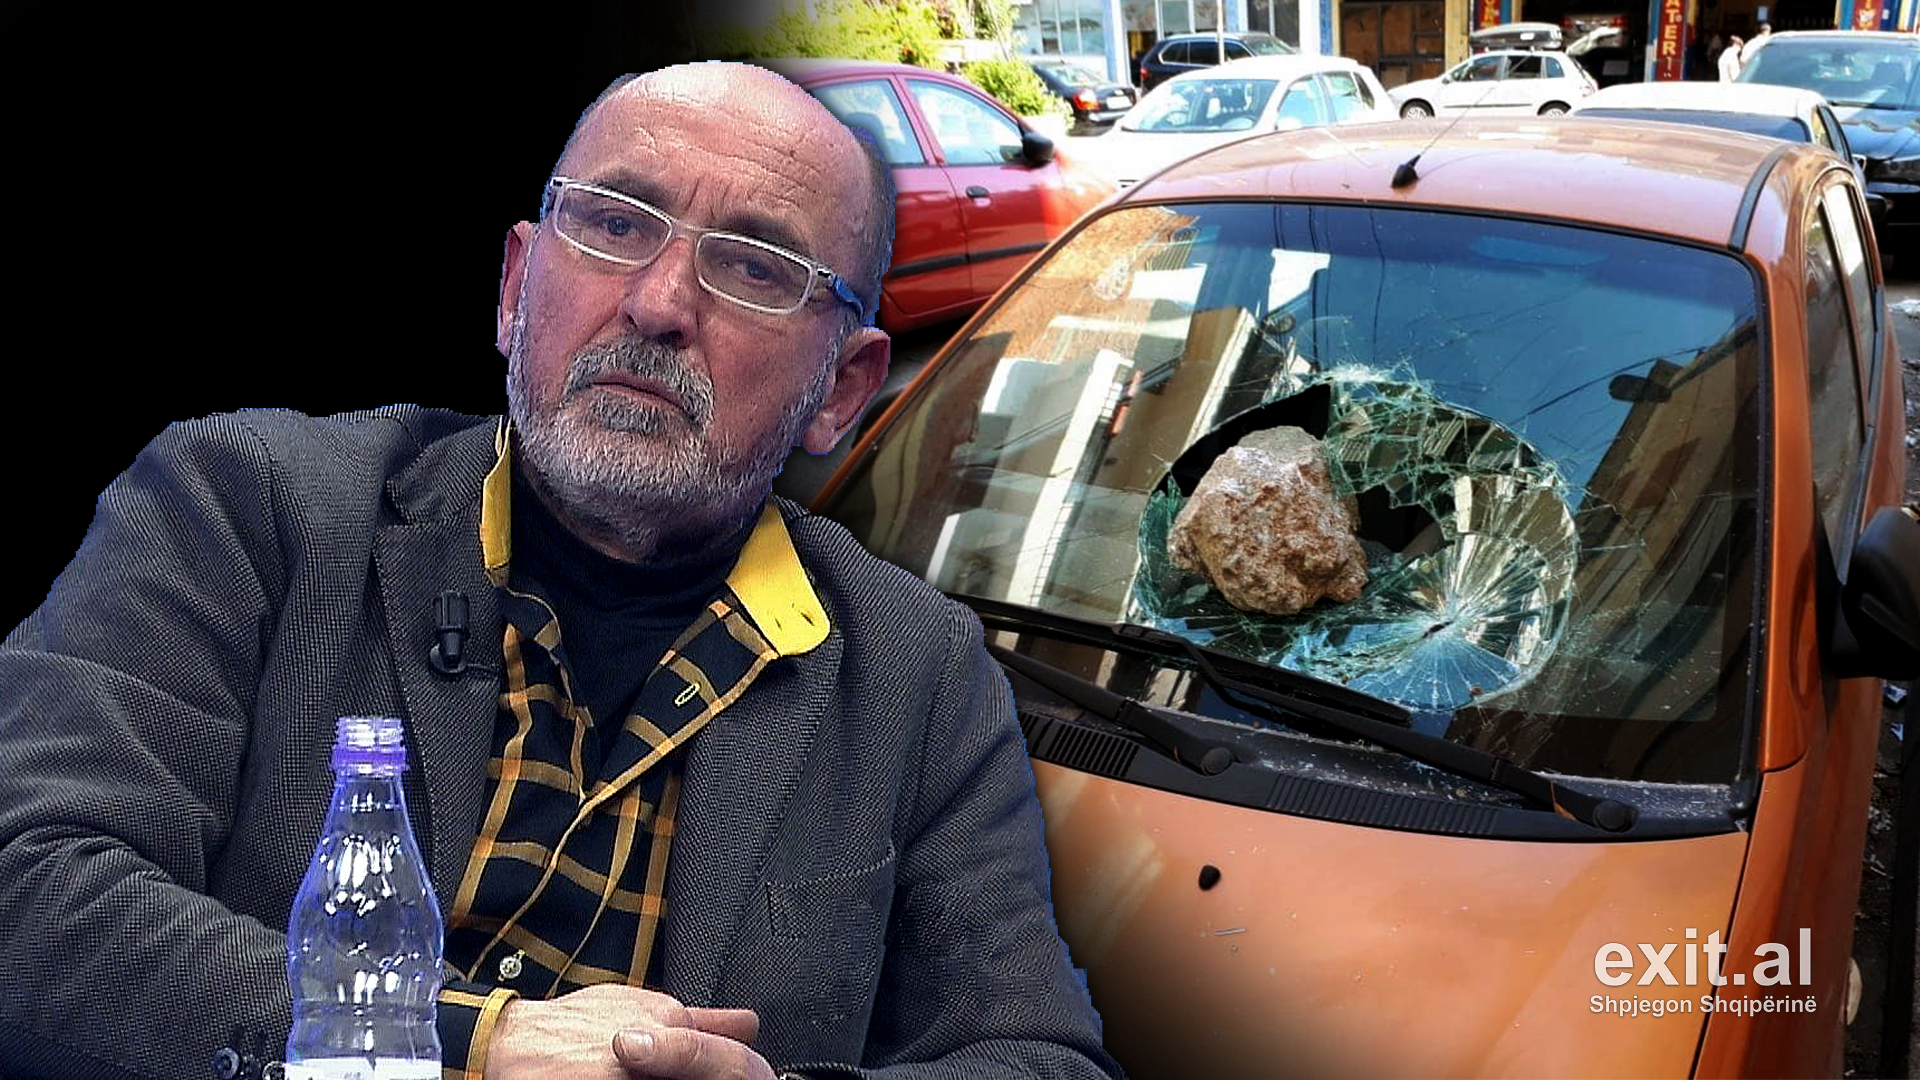 Journalist's Car Attacked, Police Accused of Misinformation